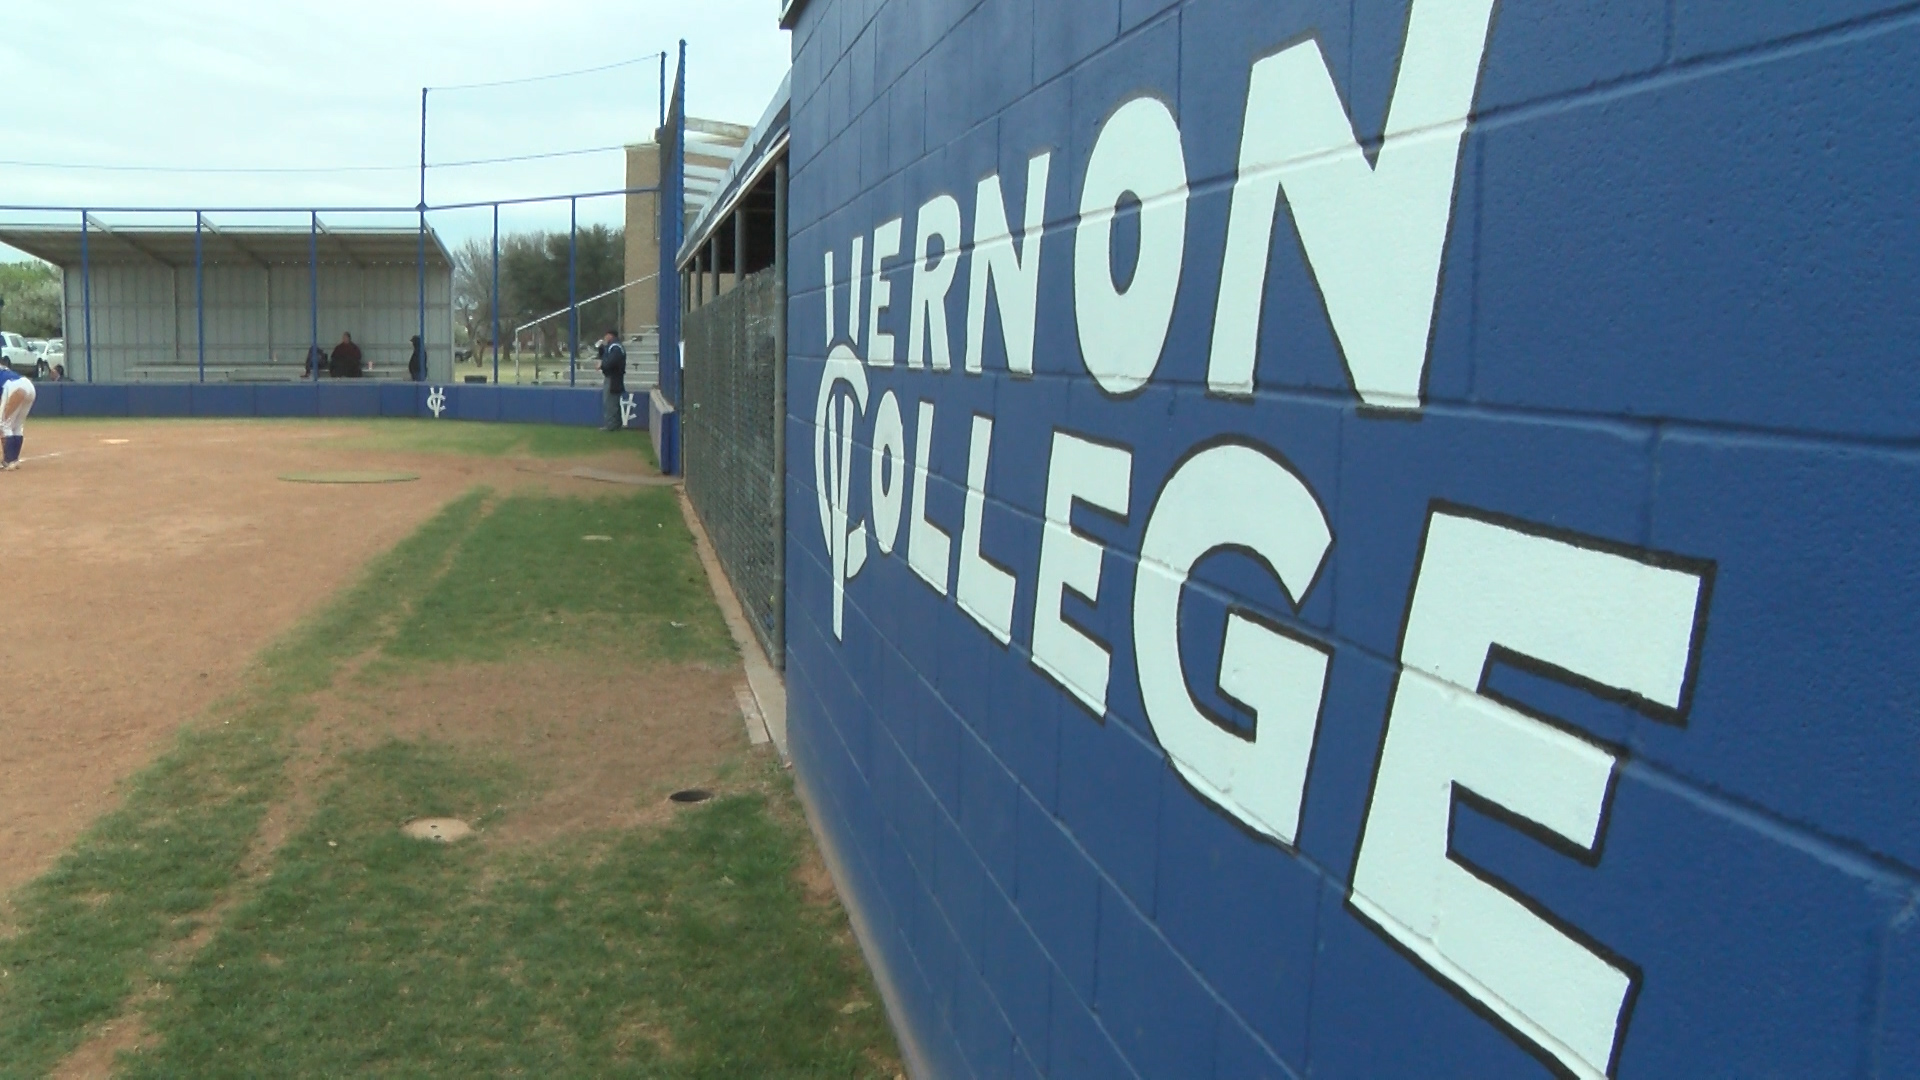 VERNON COLLEGE SOFTBALL_1489290549631.jpg